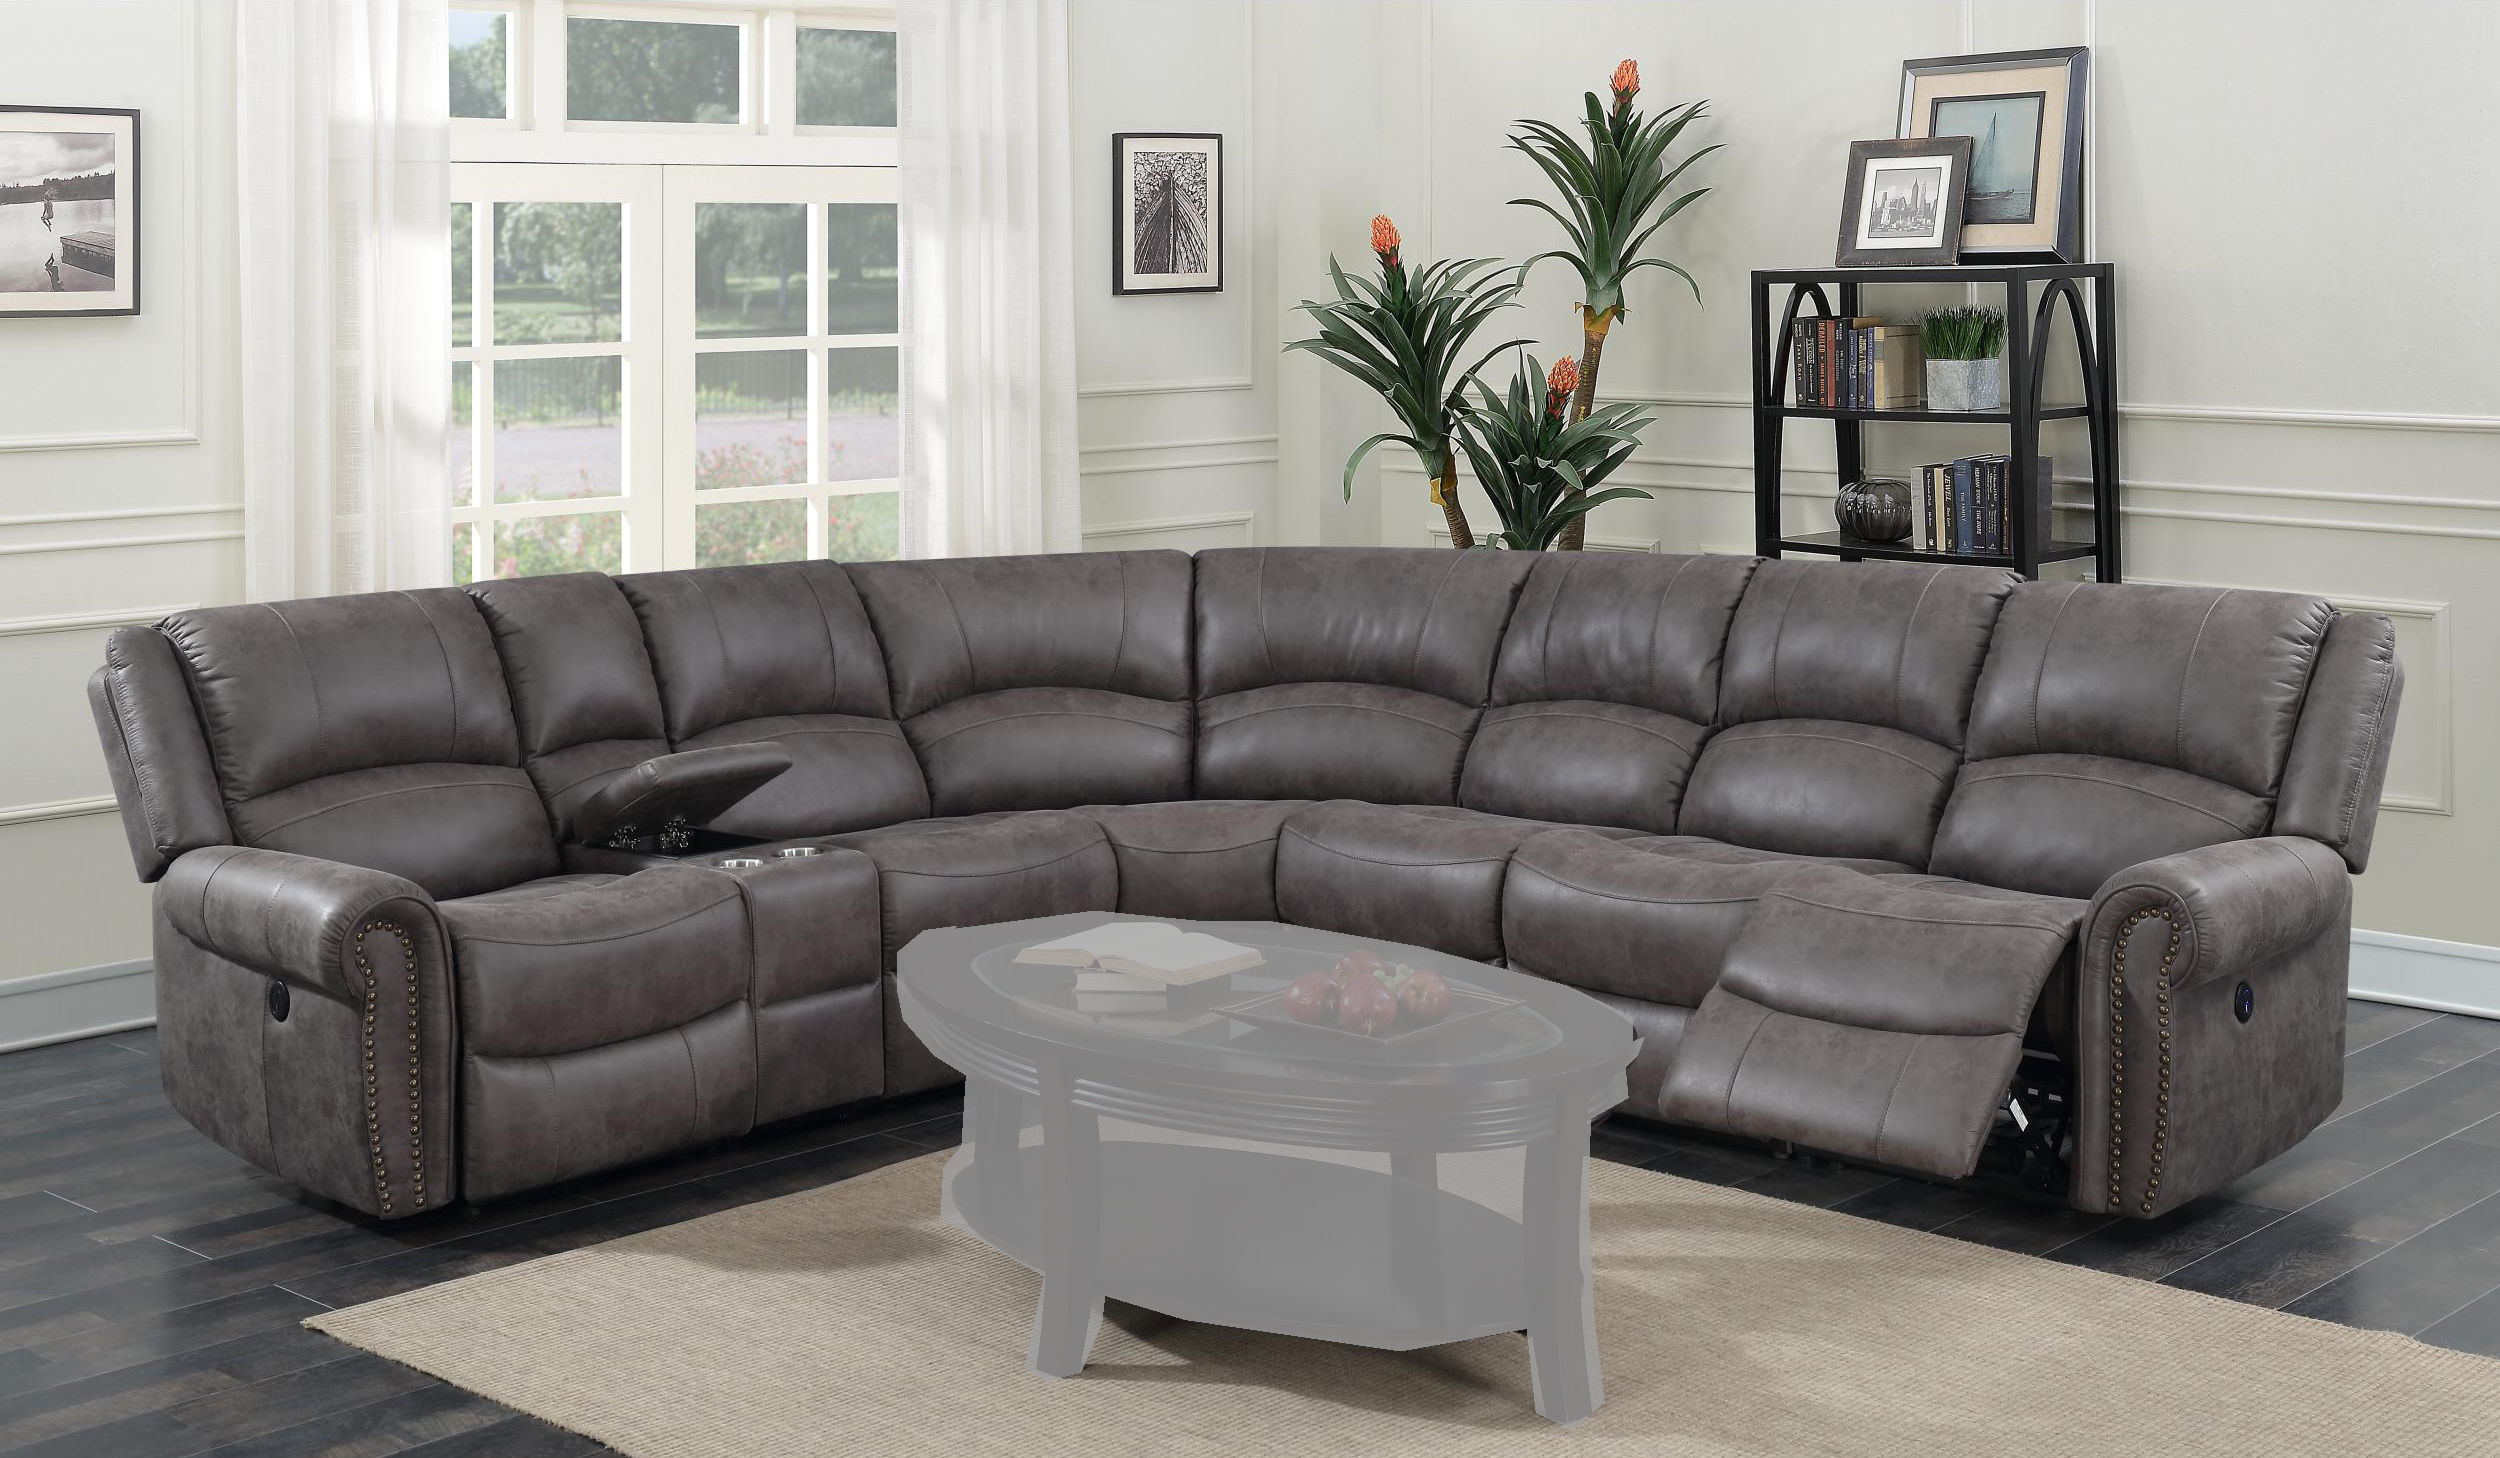 Enjoyable Emerald Home Spencer Charcoal Gray Modular Reclining Sectional Inzonedesignstudio Interior Chair Design Inzonedesignstudiocom